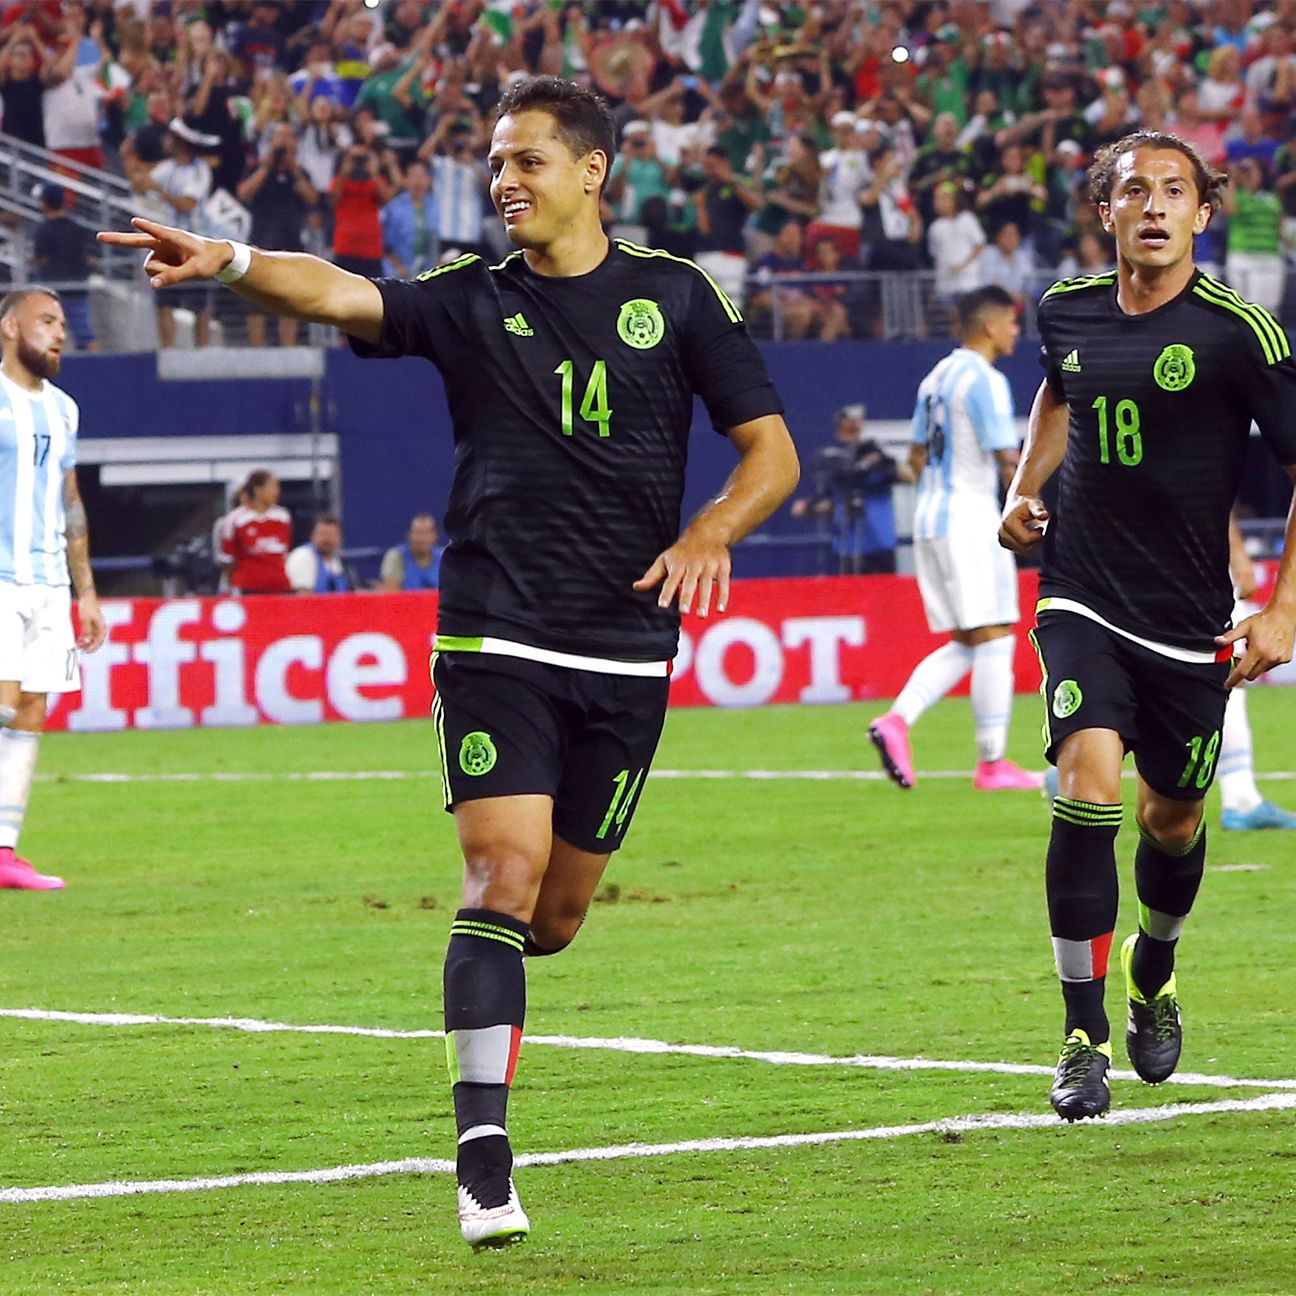 There is no stopping Chicharito Hernandez in 2015-16 for both club and country.